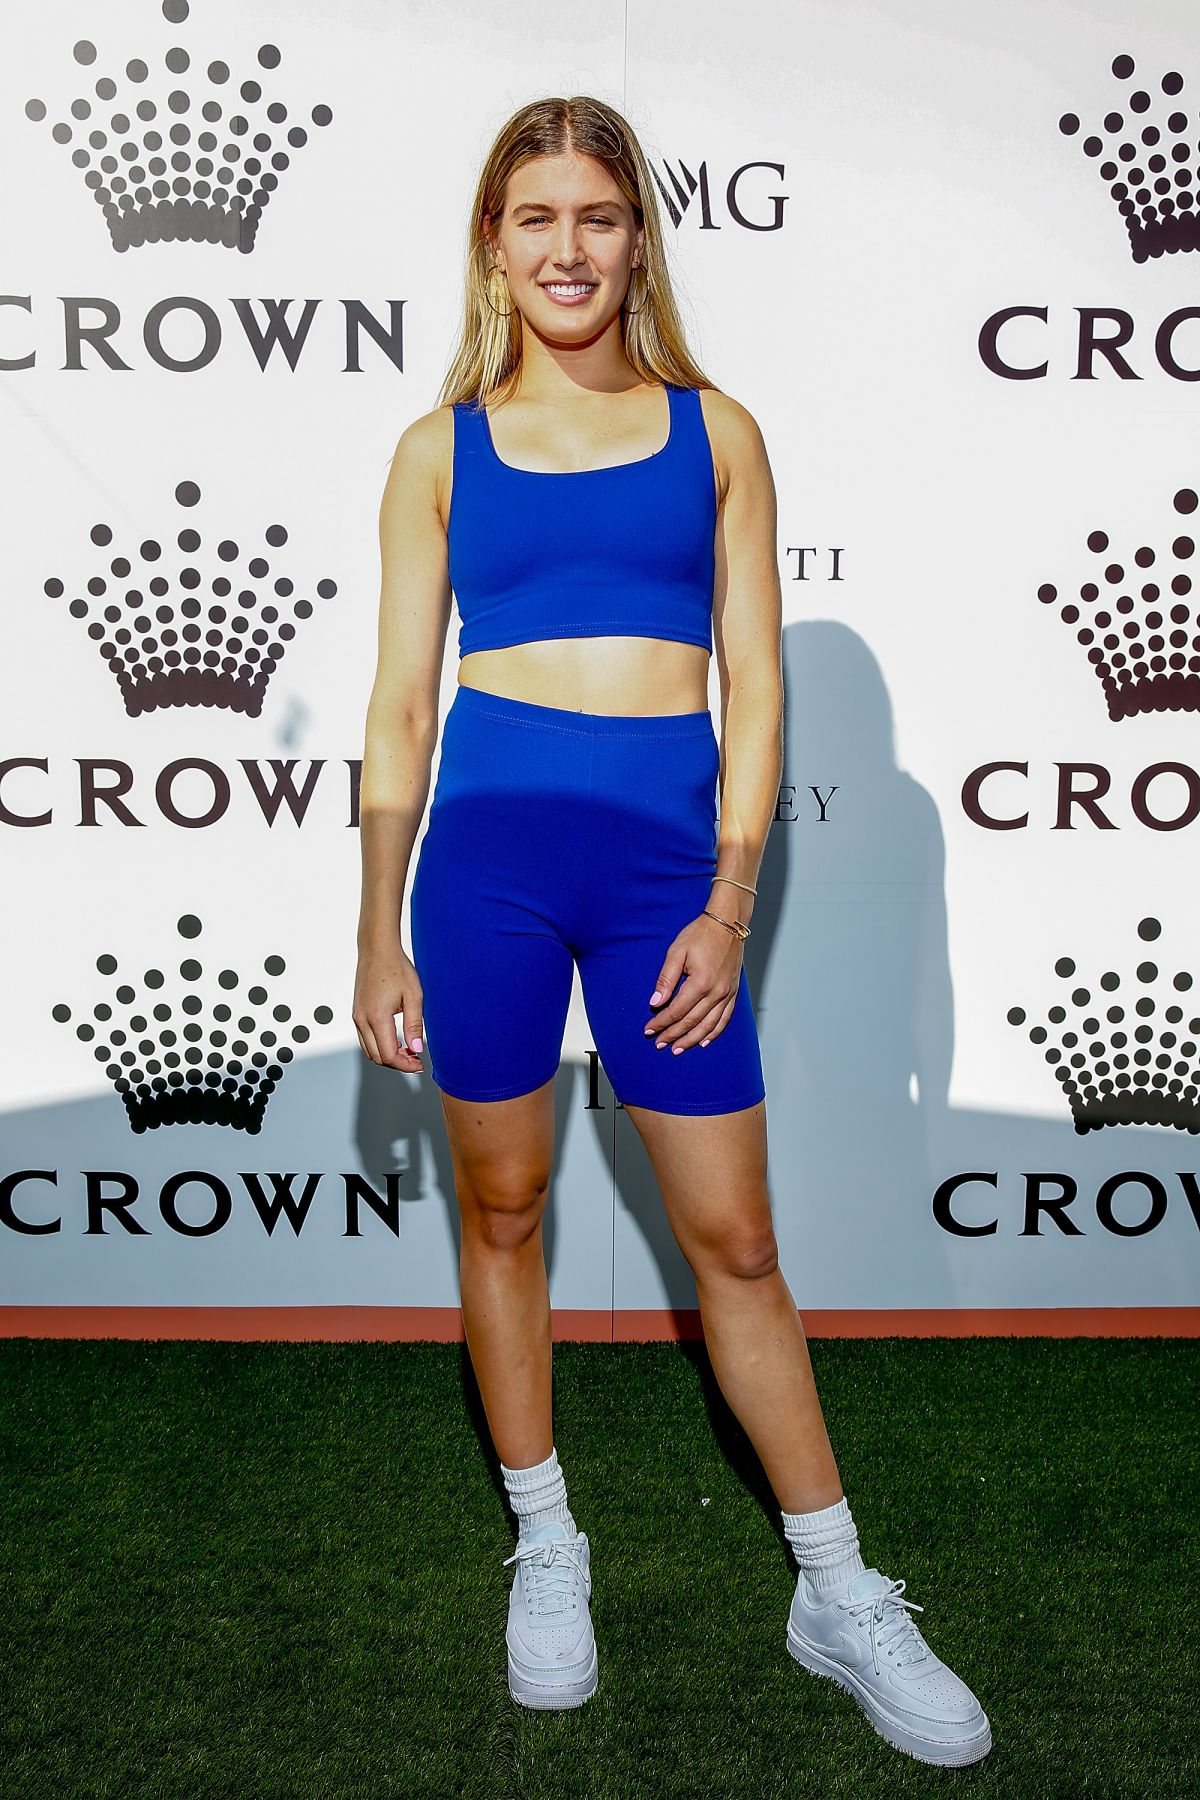 EUGENIE BOUCHARD at Crown Img Tennis Party in Melbourne 01/13/2019